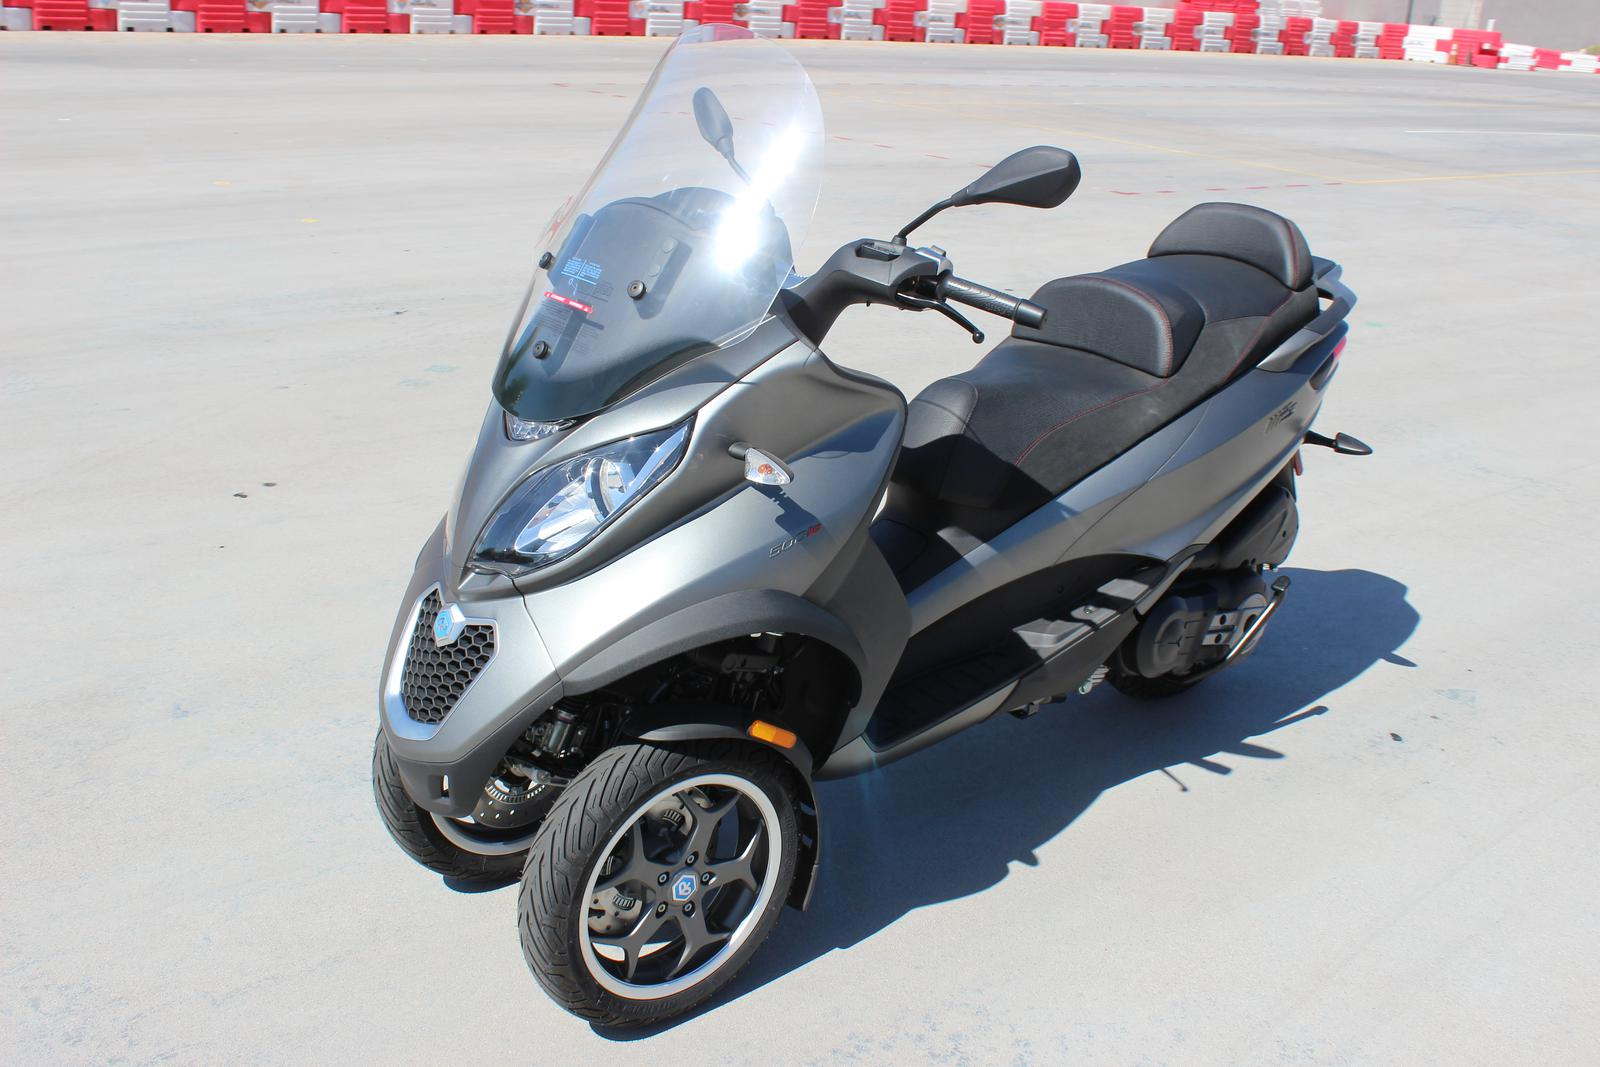 2018 Piaggio MP3 500 Sport ABS for sale in Scottsdale, AZ. GO AZ ...